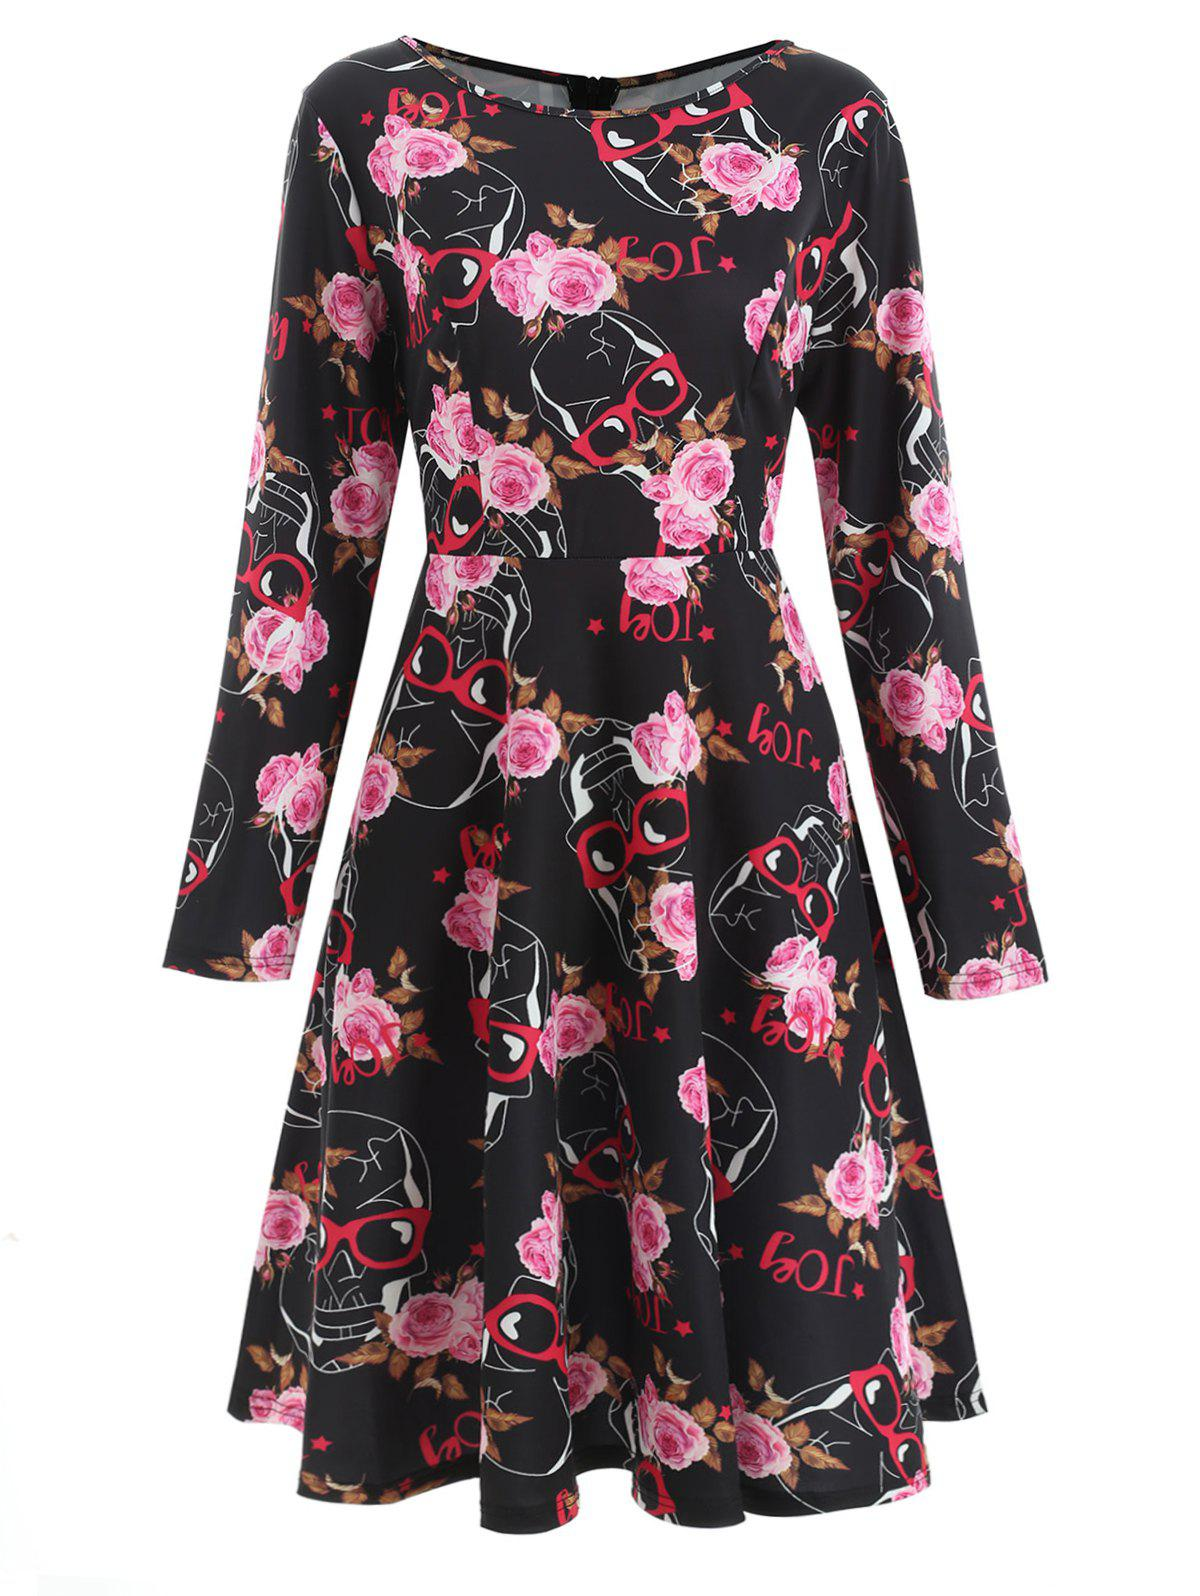 Best Sugar Skull Print Swing Dress